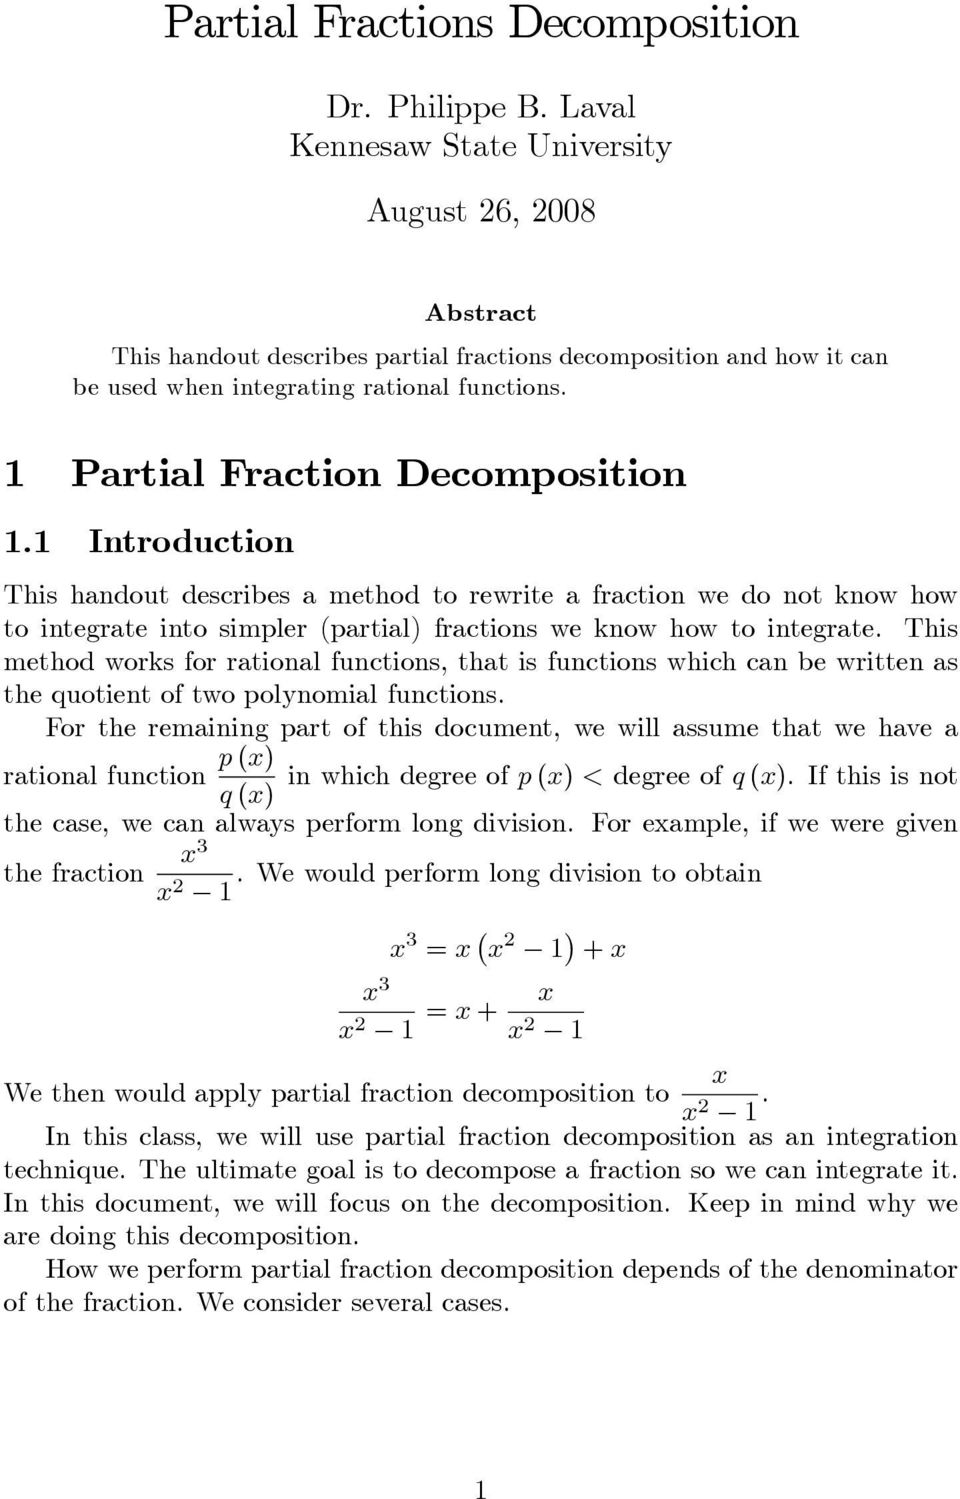 Partial Fraction Decomposition. Introduction This handout describes a method to rewrite a fraction we do not know how to integrate into simpler (partial) fractions we know how to integrate.